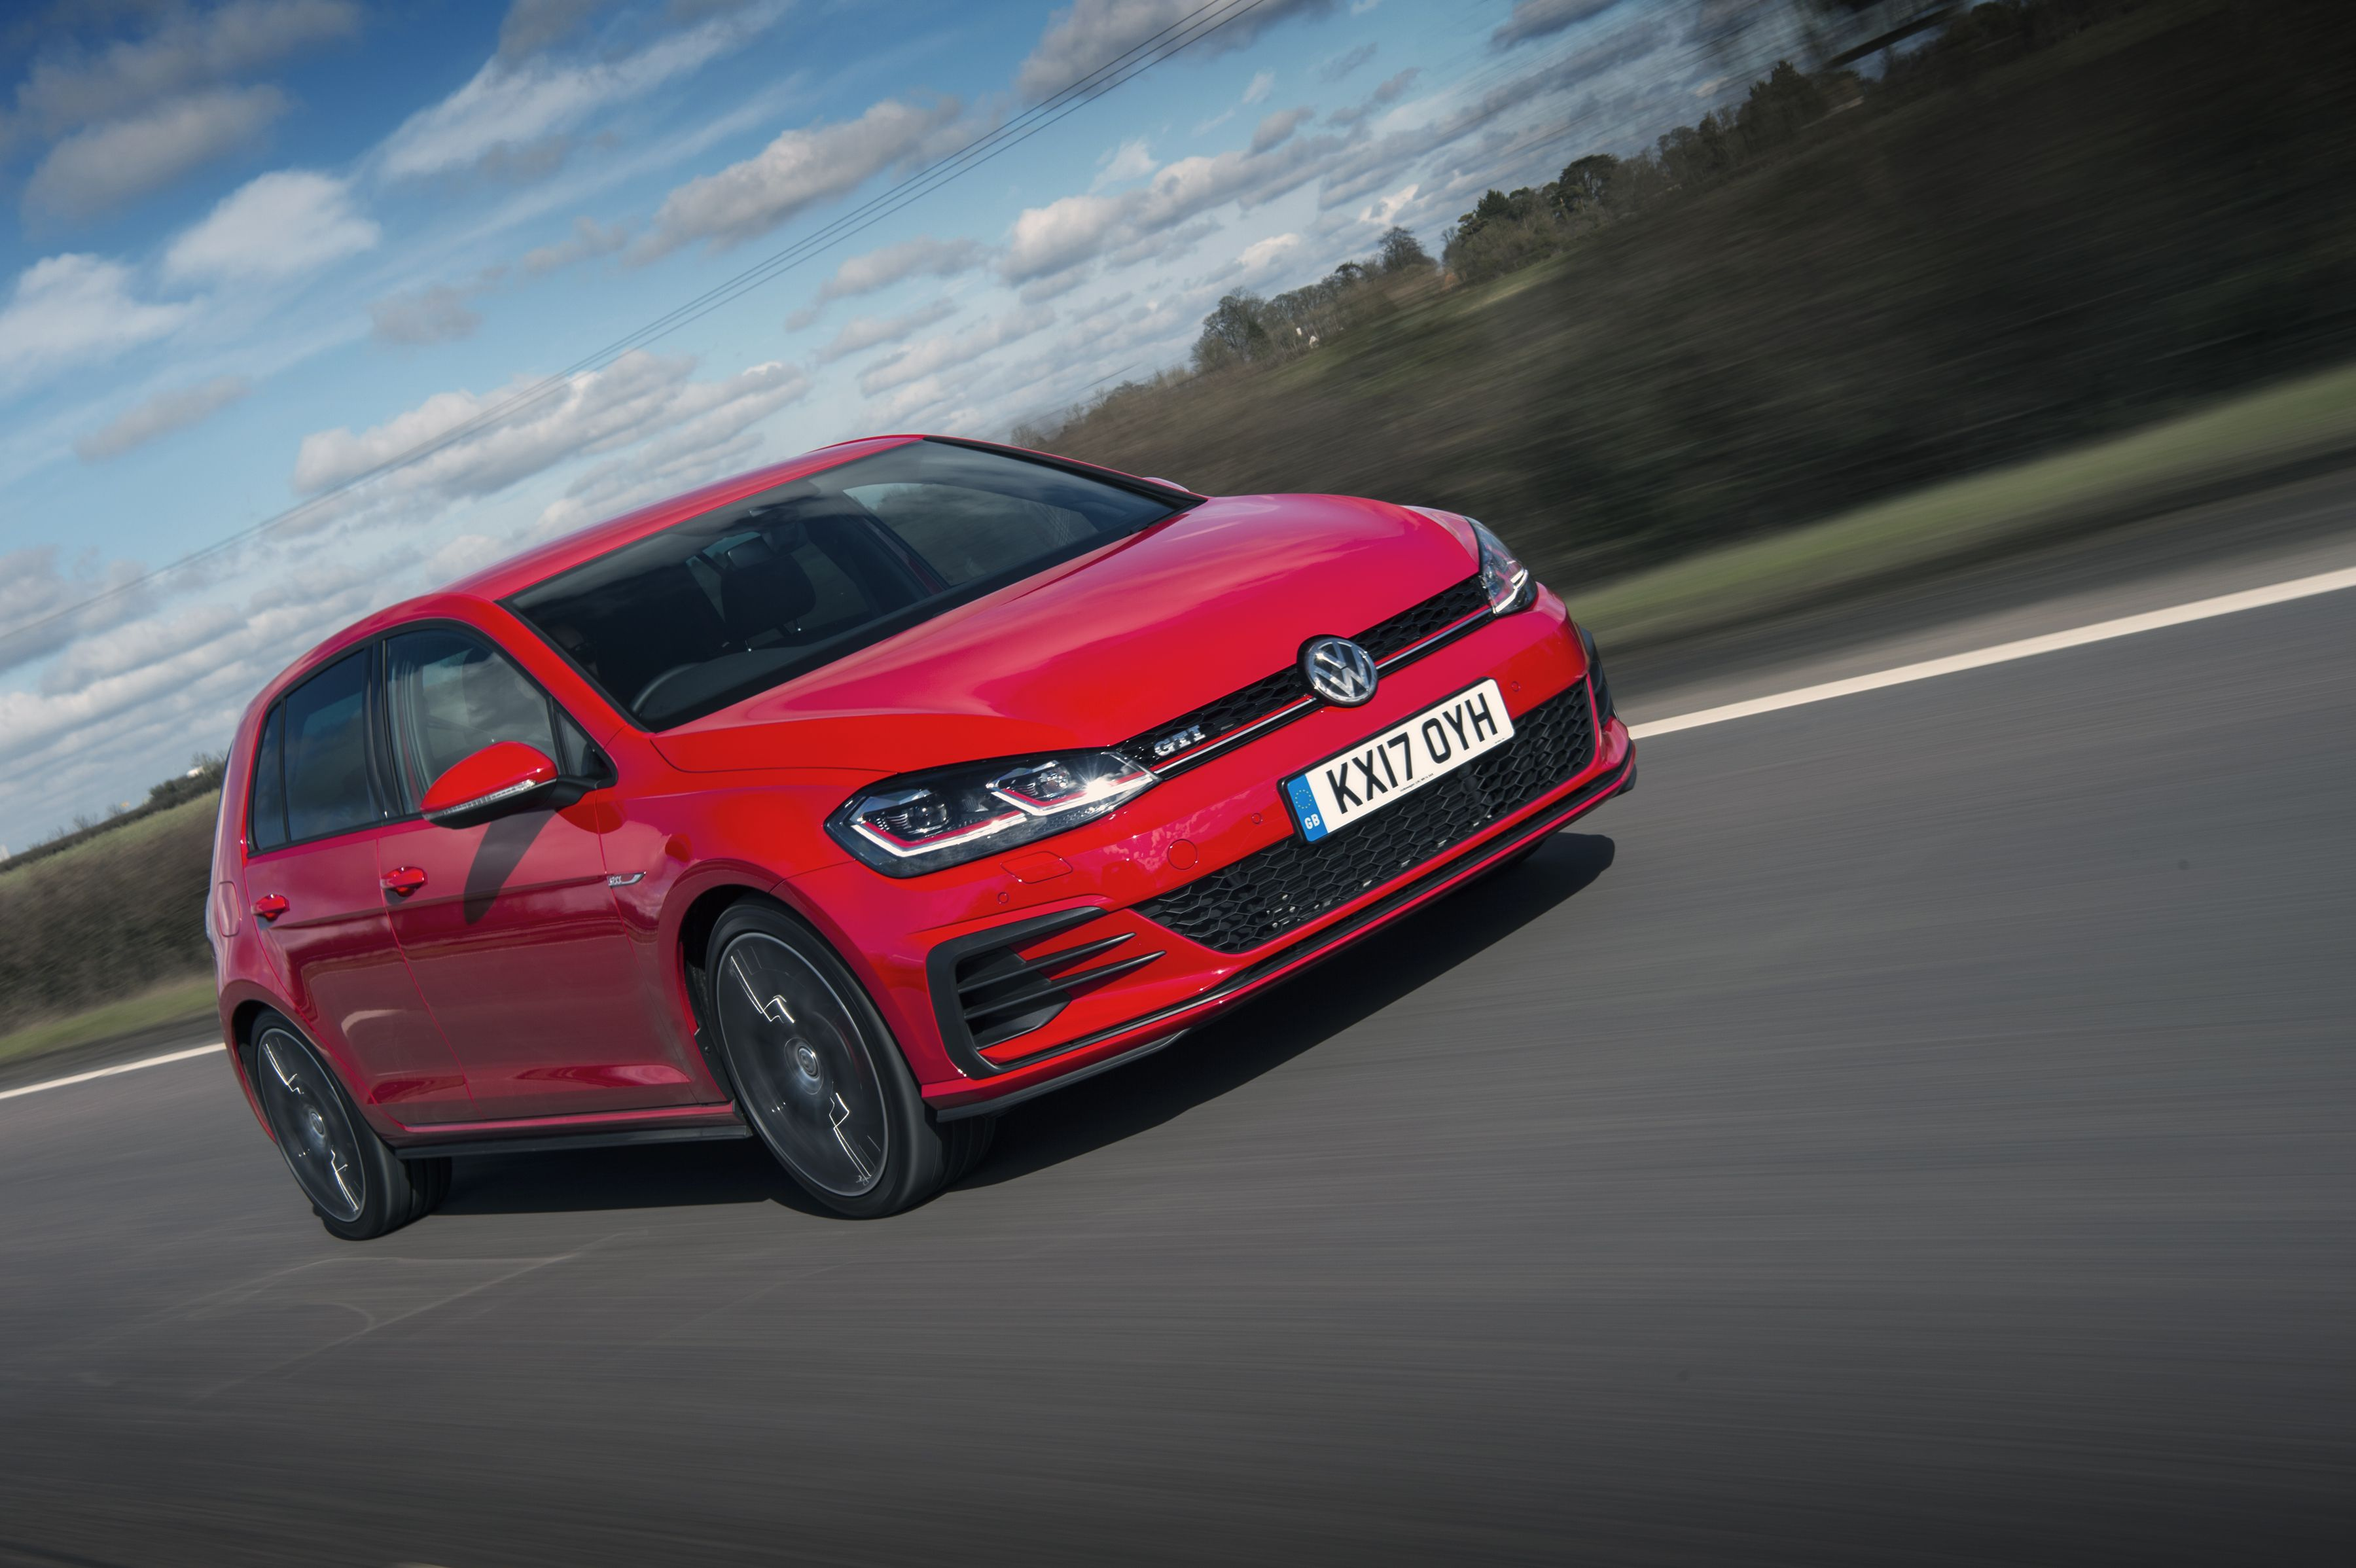 The Volkswagen Golf Gti Is Still One Of The Most Popular Hatchbacks On The Market Take A Look Online Volkswagengolf Germanca In 2020 Golf Car Volkswagen Golf Gti